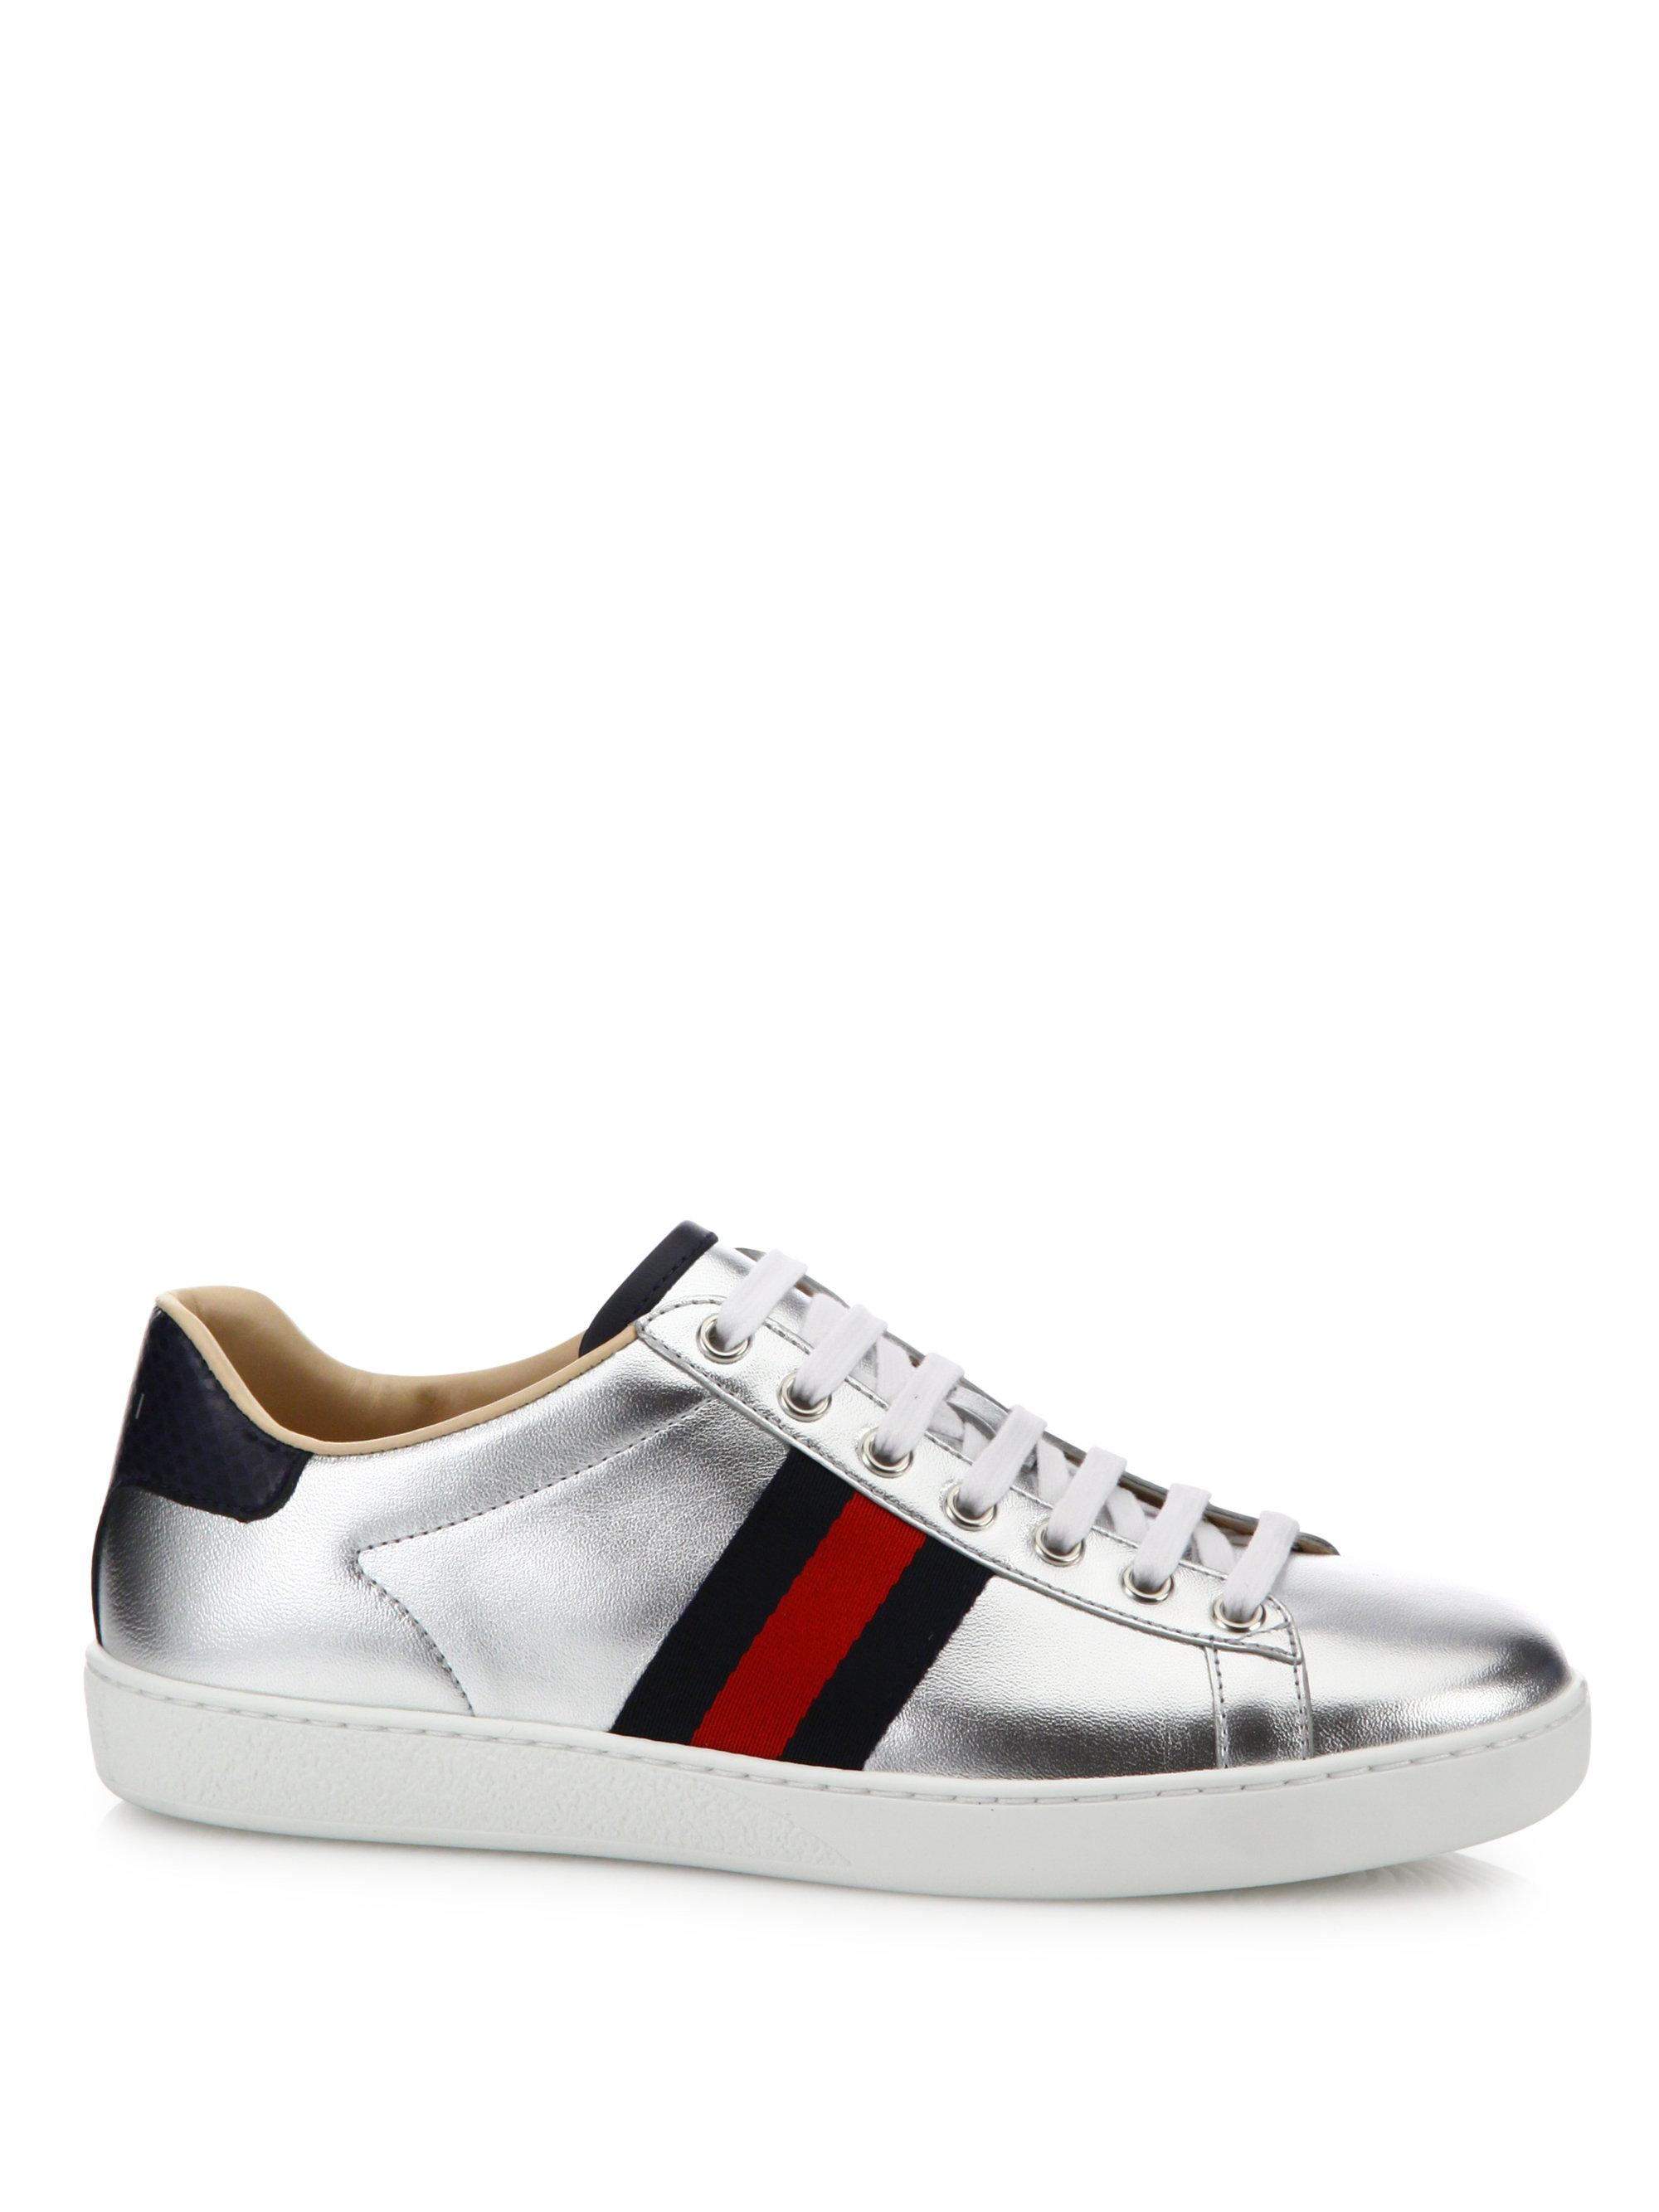 b99f707dd5b8 Lyst - Gucci New Ace Metallic Leather Low-top Sneakers